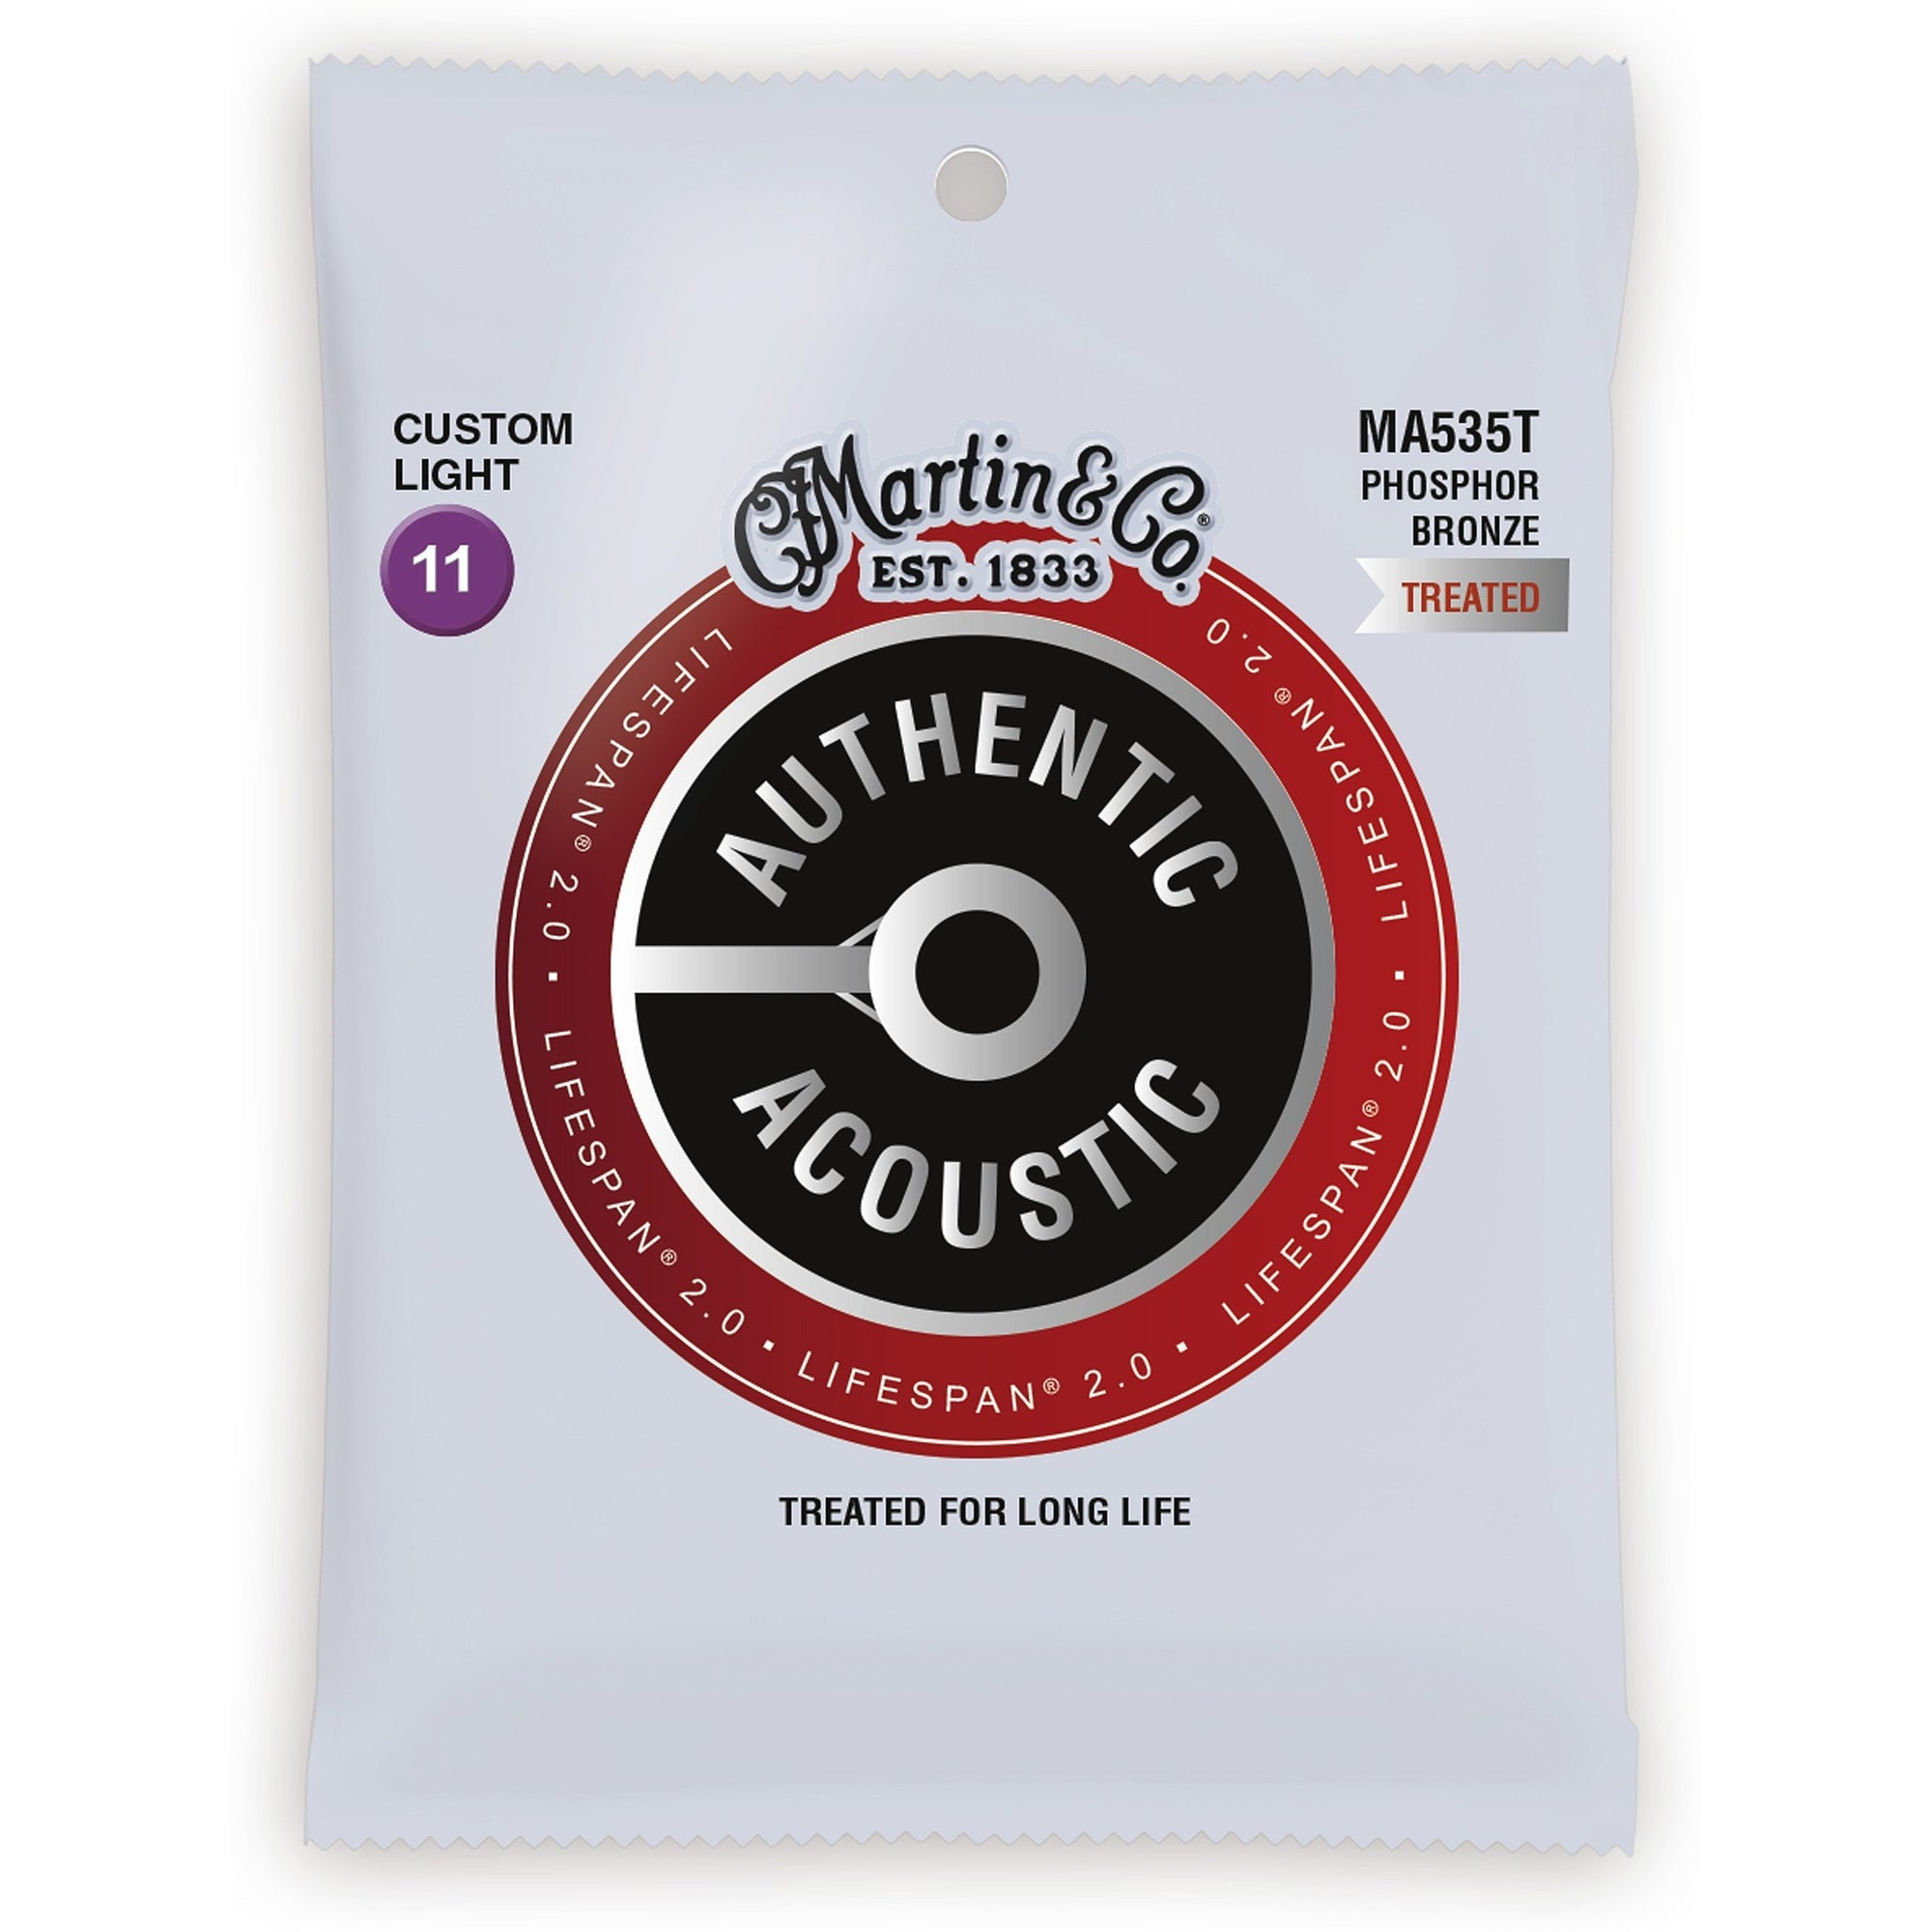 Martin Authentic Lifespan 2.0 Treated Phosphor Bronze Acoustic Guitar Strings, MA535T, Custom Light